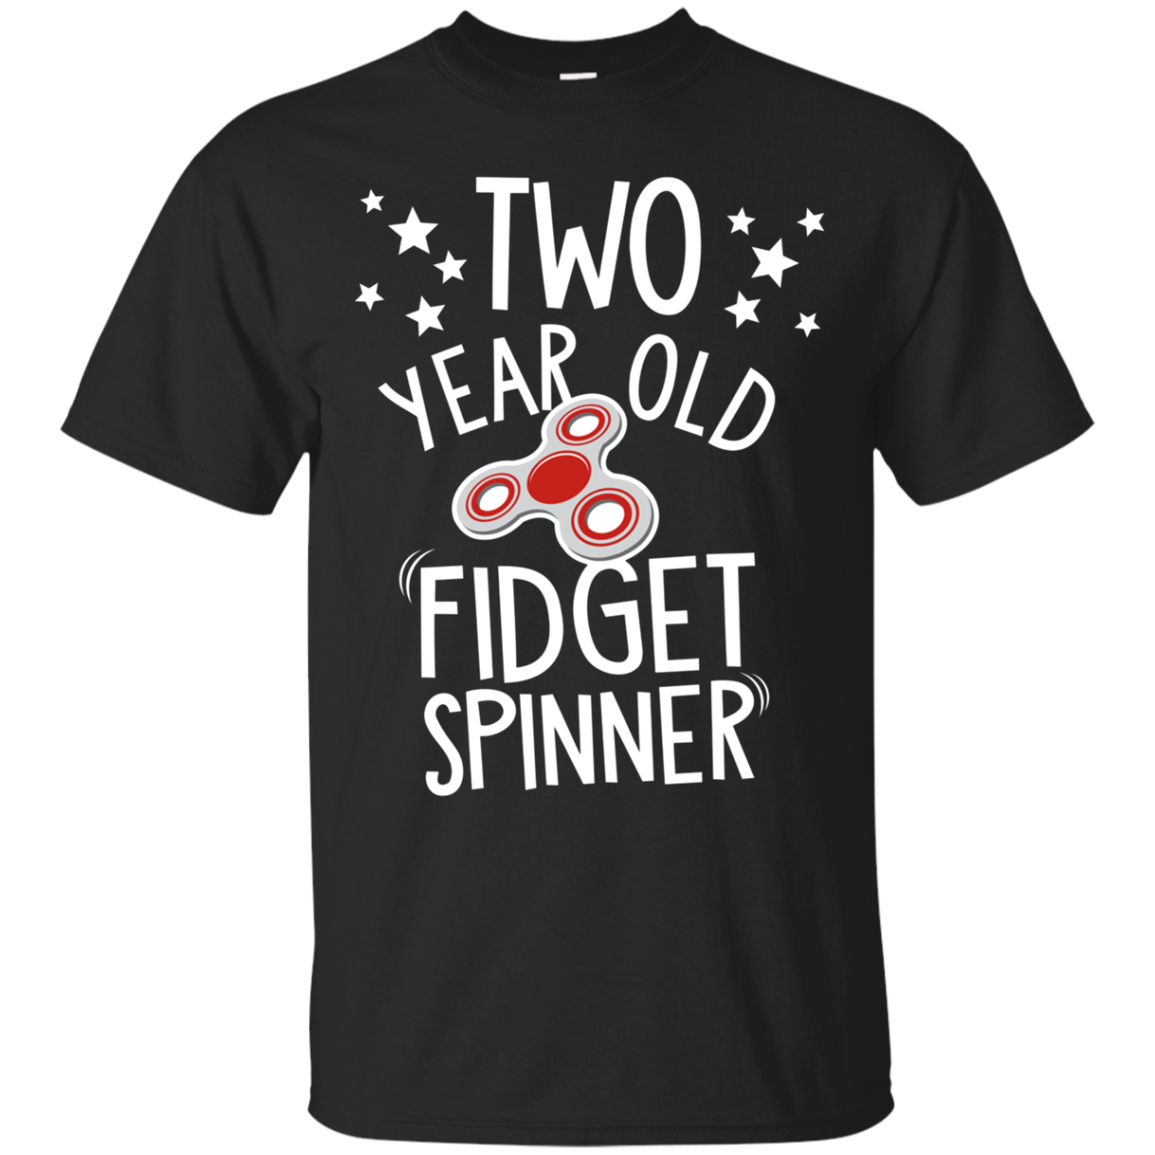 Kids 2 Year Old Fidget Spinner T-Shirt - Boys Girls Birthday Tee